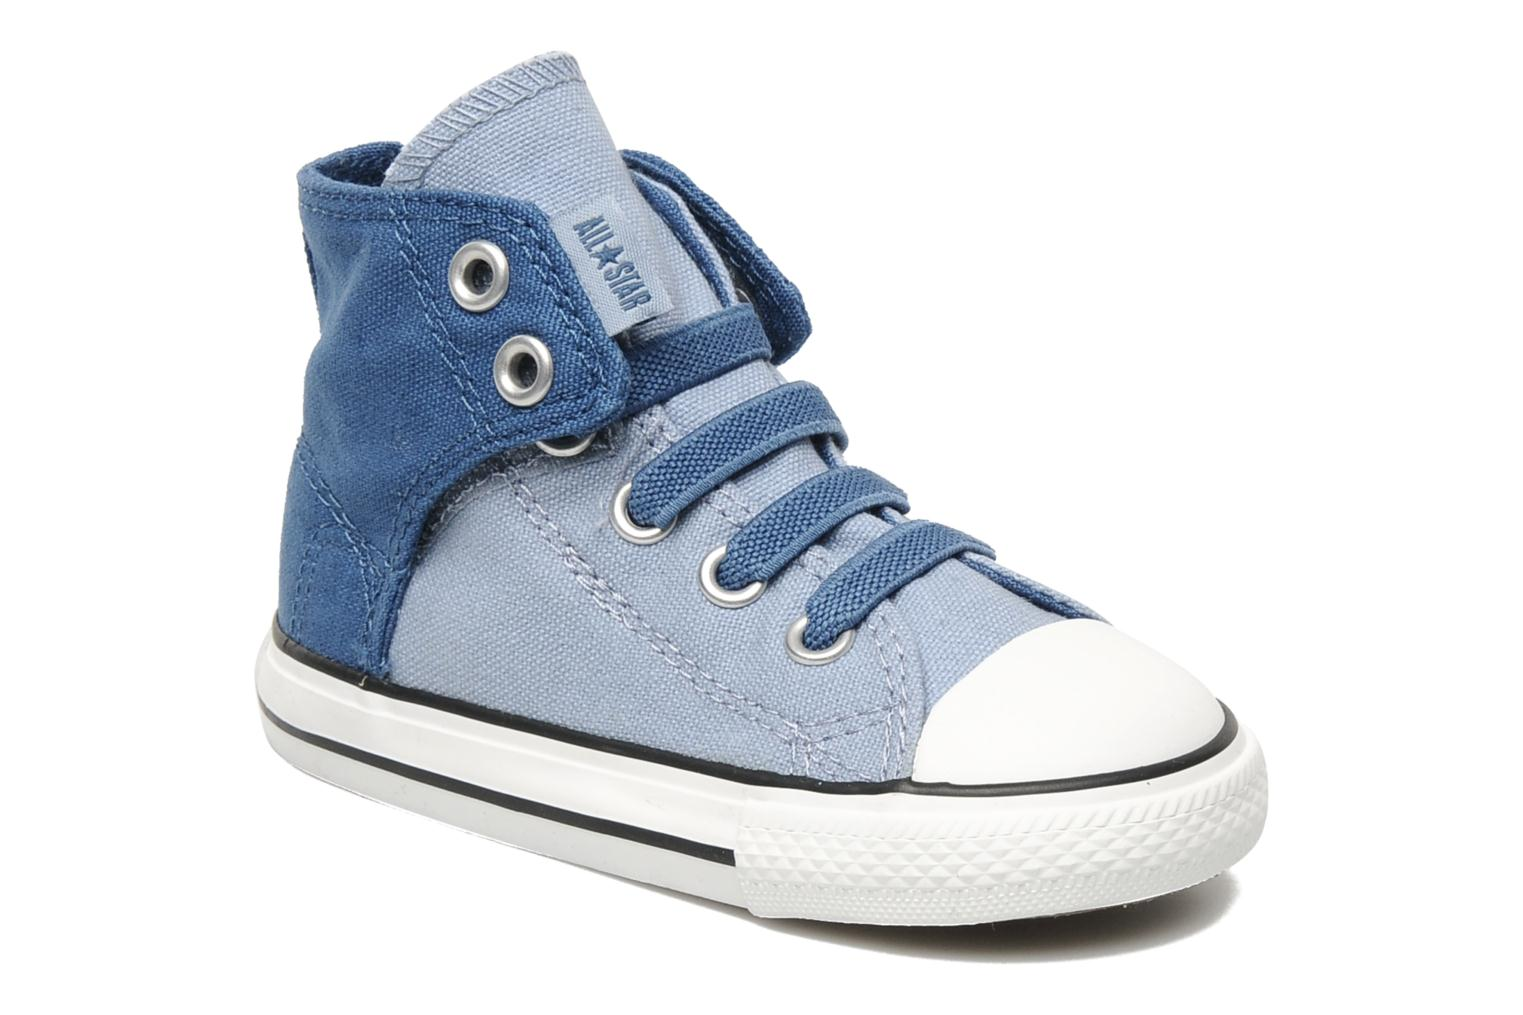 converse chuck taylor all star easy slip hi k bleu baskets chez sarenza 123960. Black Bedroom Furniture Sets. Home Design Ideas